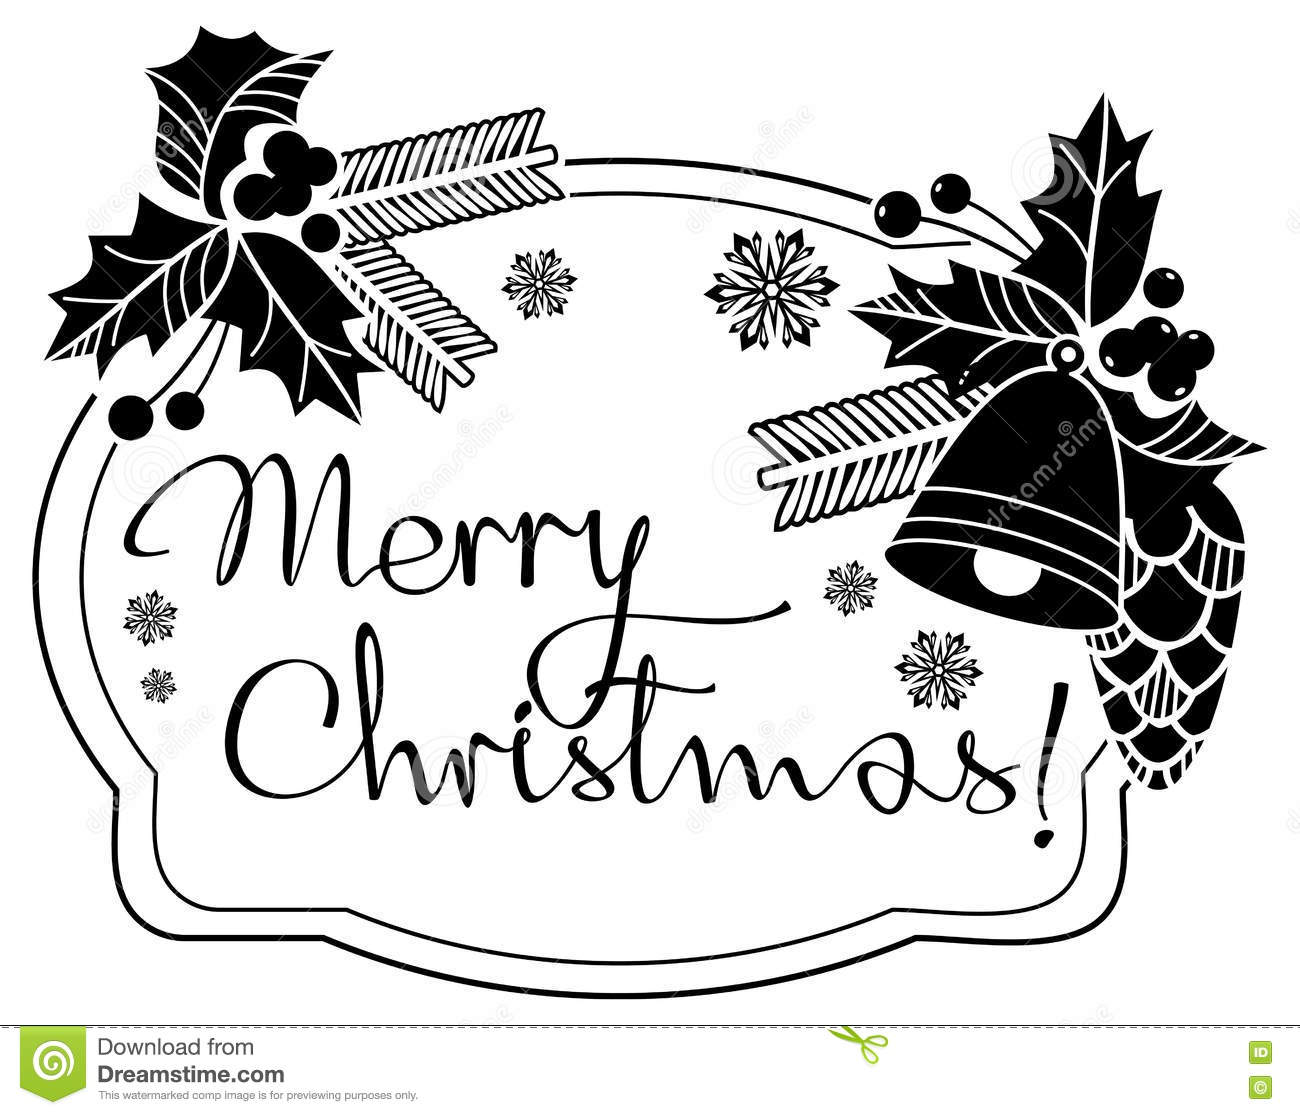 Christmas Label With Written Greeting `Merry Christmas.